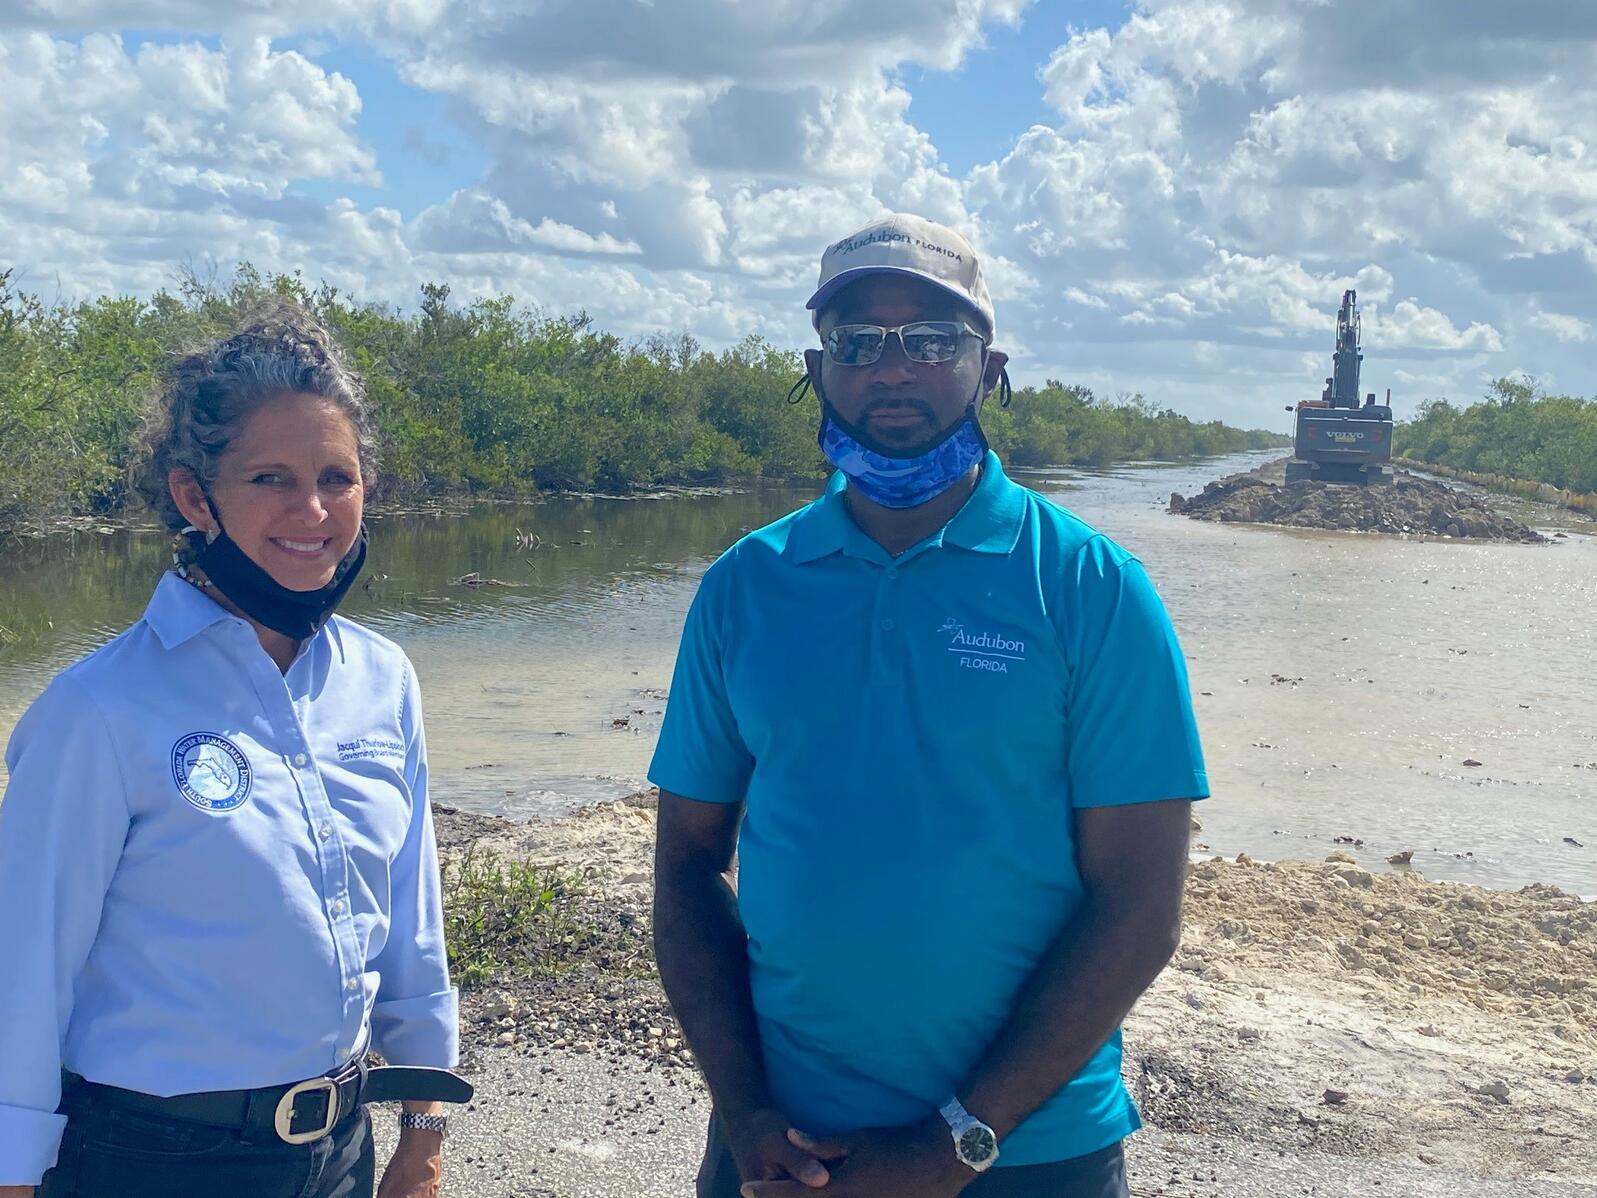 Northern Everglades Policy Analyst Doug Gaston with Jacqui Thurlow-Lippisch, governing board member of the South Florida Water Management District.